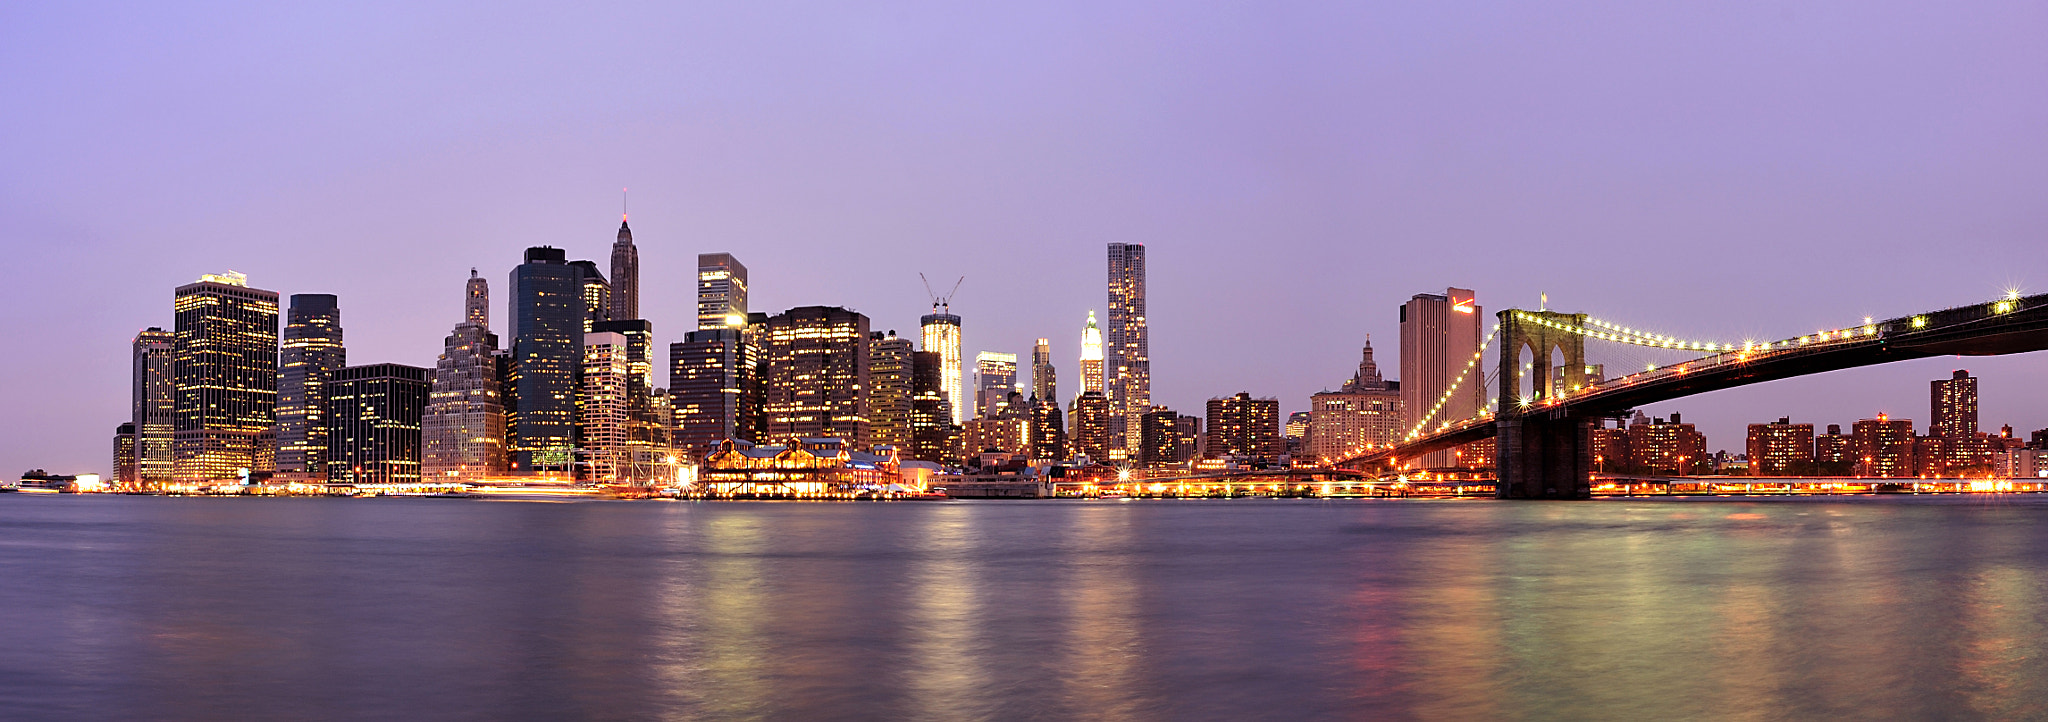 Photograph Manhattan at Night by Bryan Leung on 500px